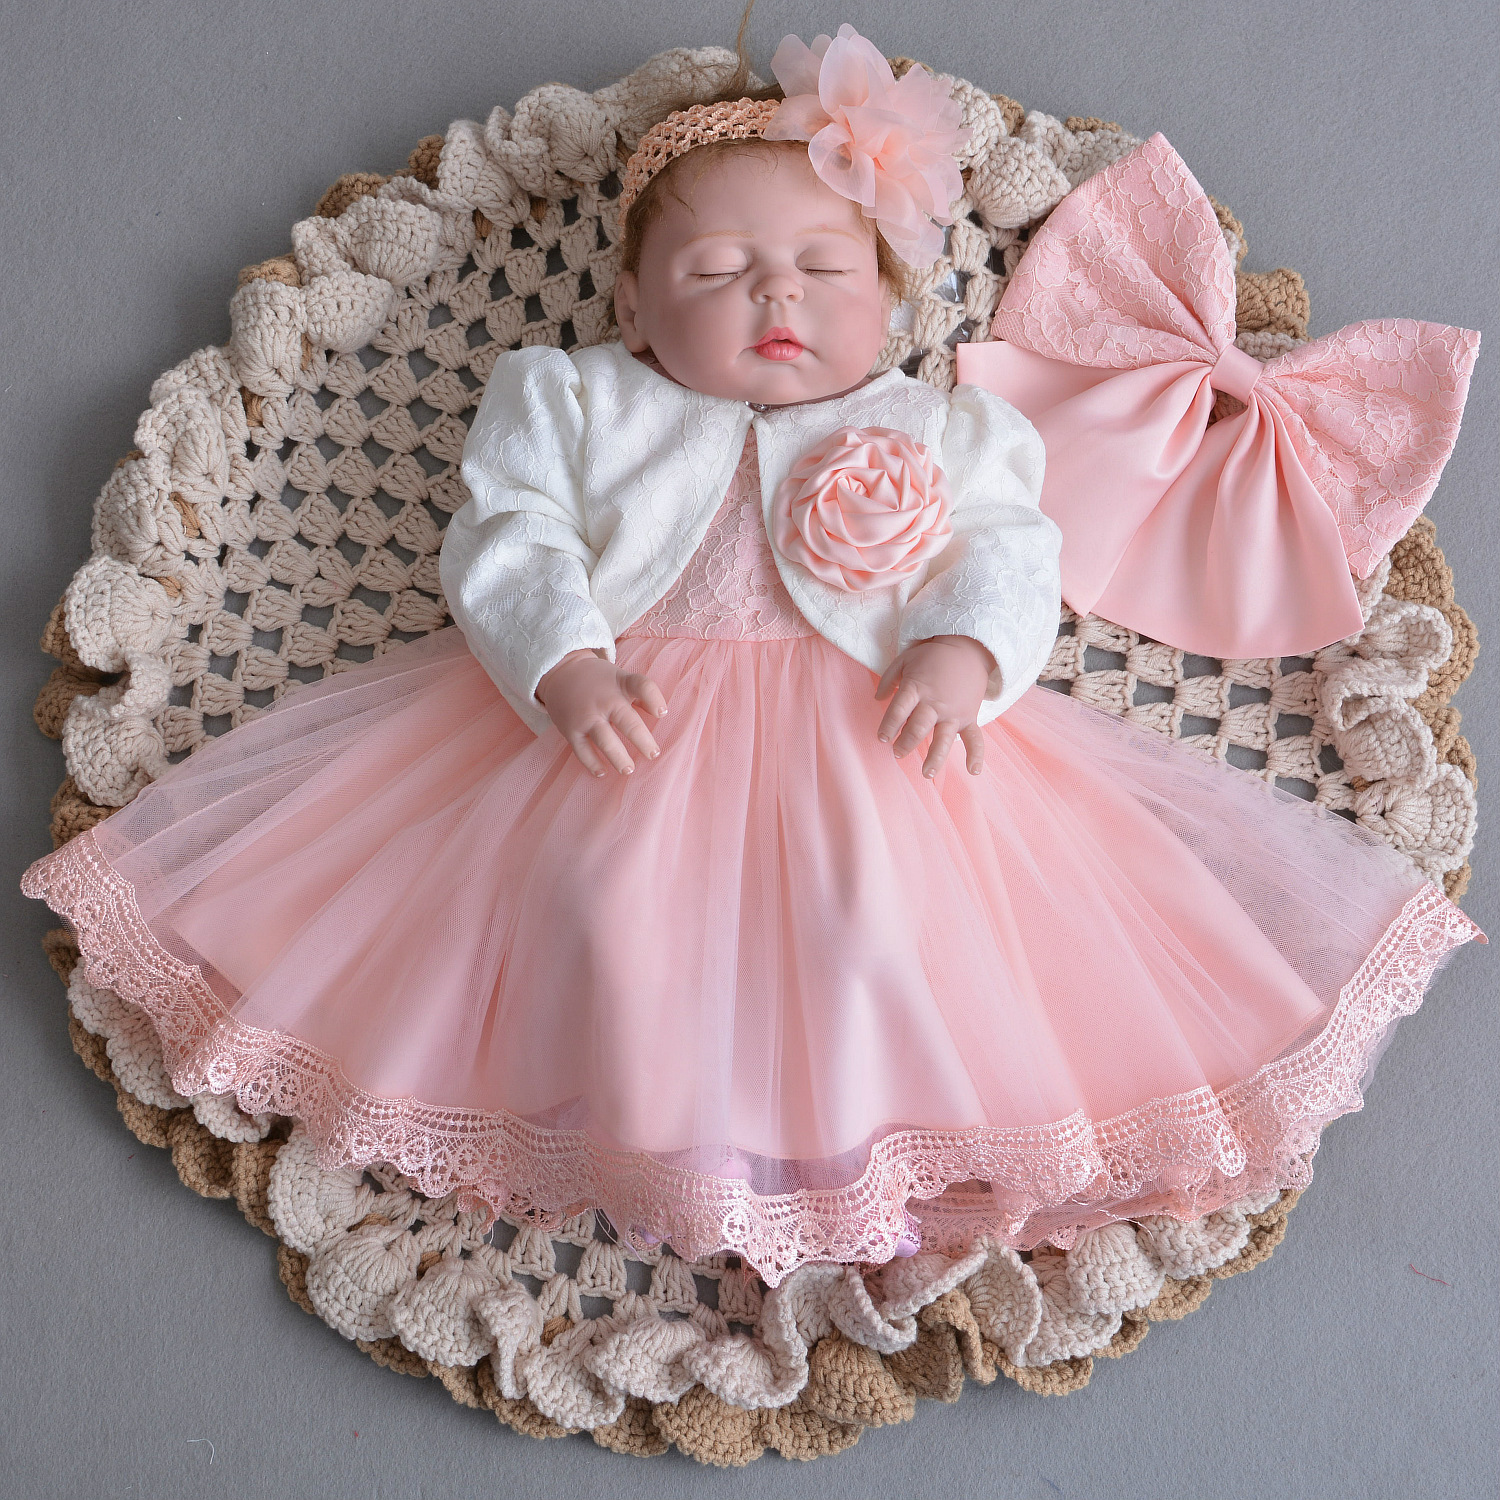 2018 baby infant newborn girl winter princess dress + headband+ outwear 3pcs set new born 1 2 year birthday party tutu dress new baby girl clothing sets lace tutu romper dress jumpersuit headband 2pcs set bebes infant 1st birthday superman costumes 0 2t